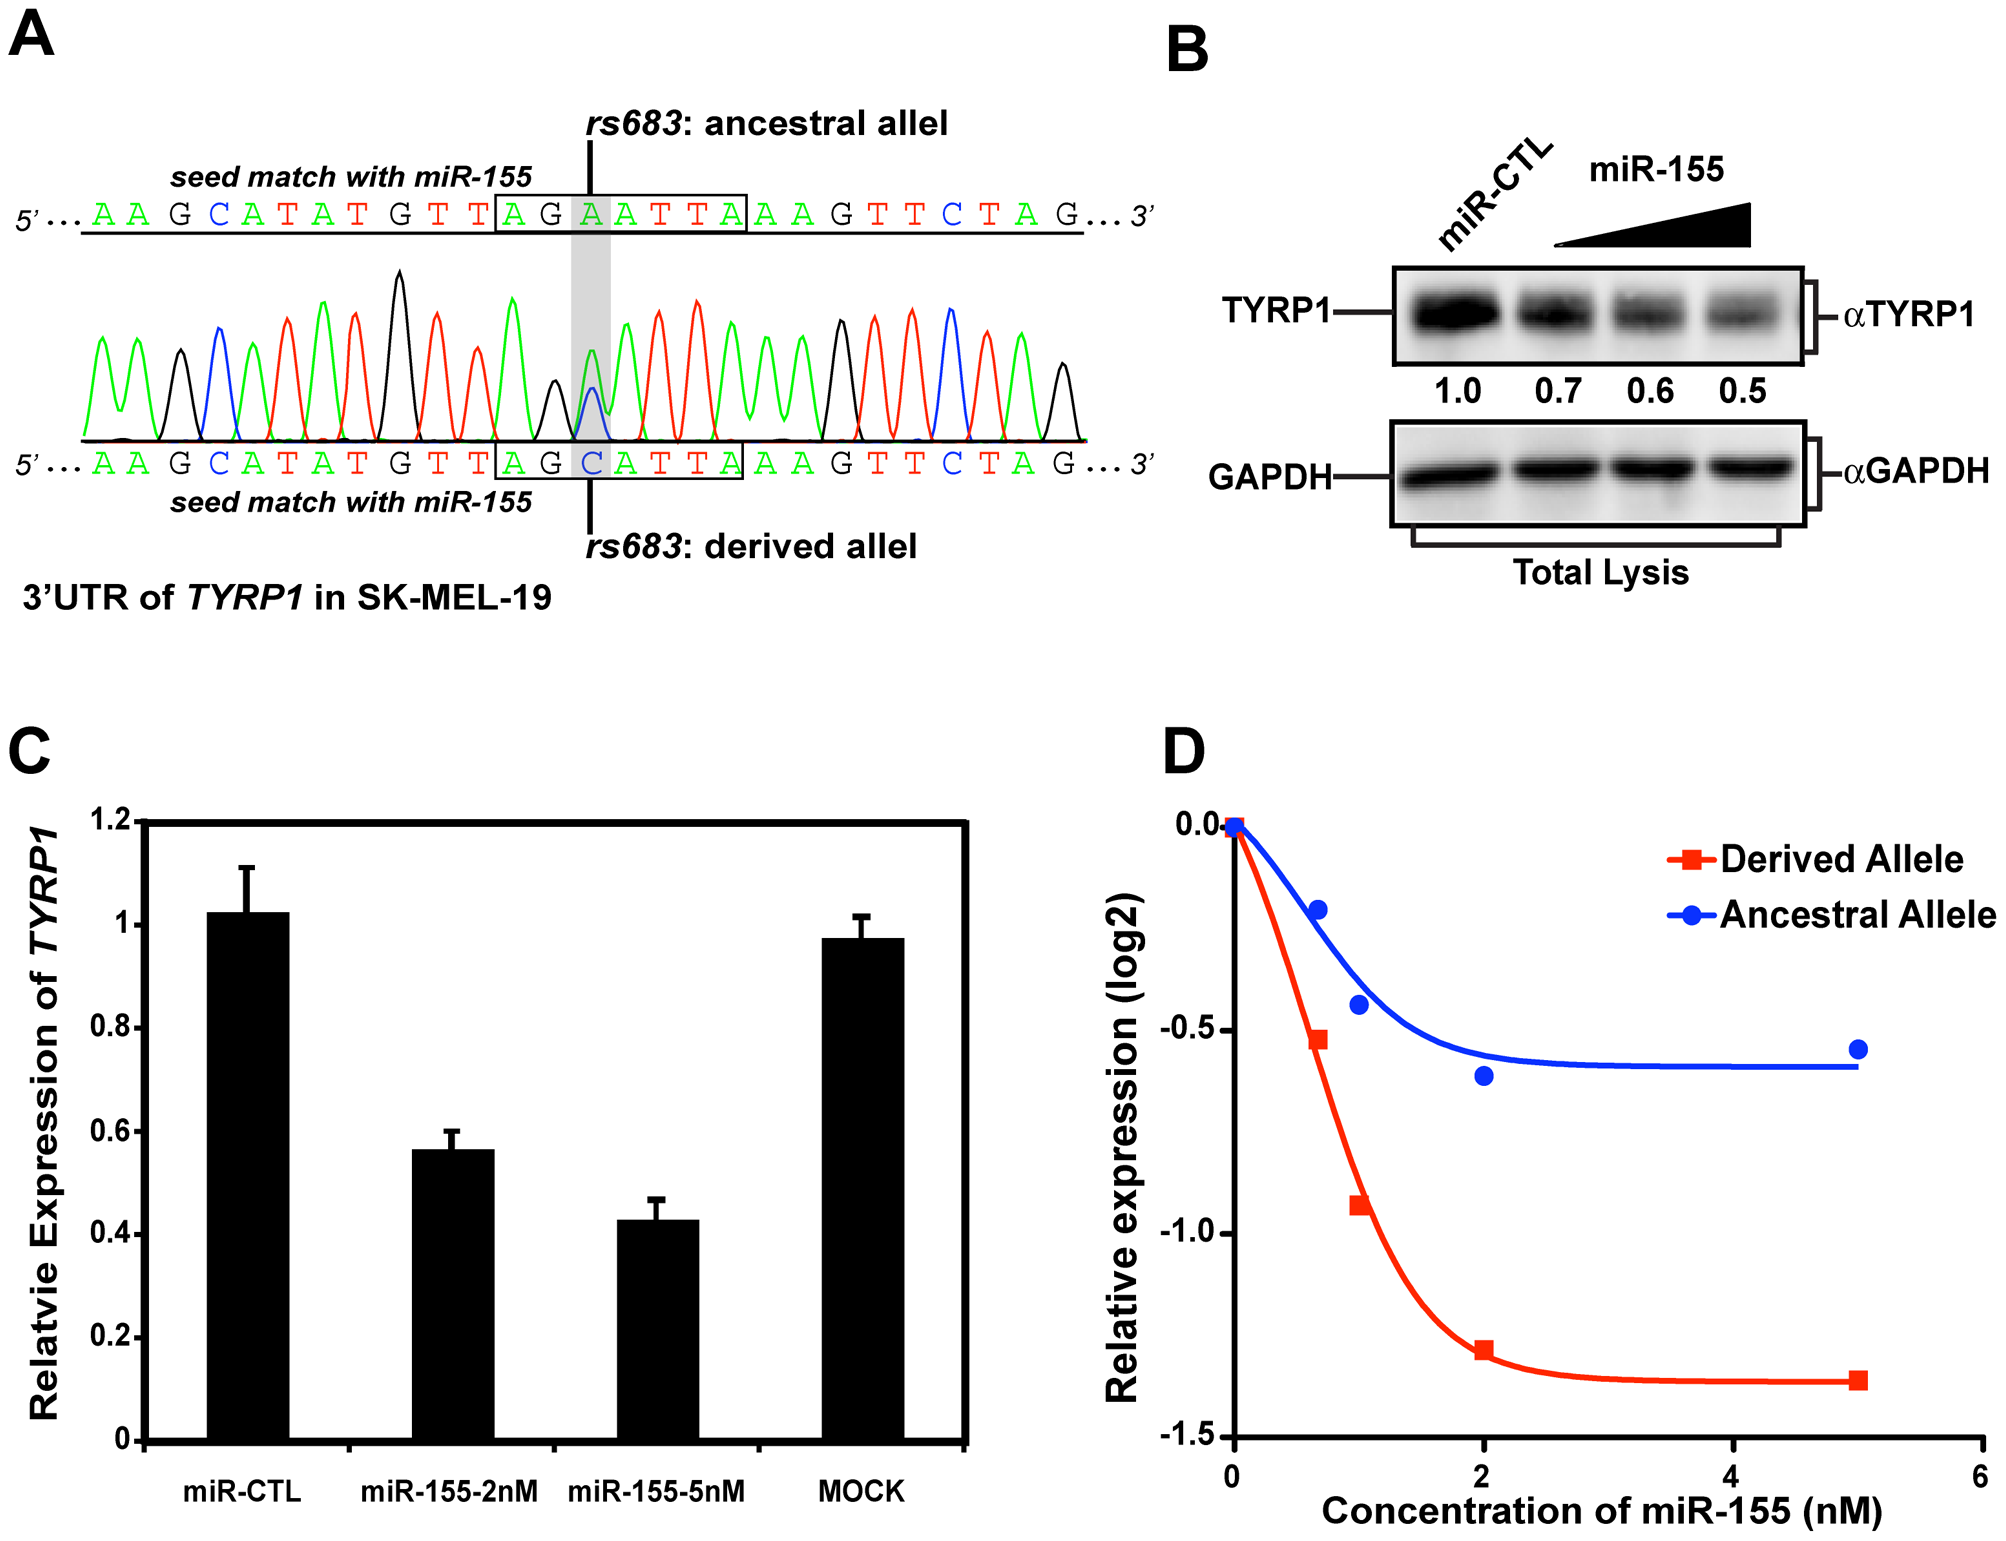 rs683 modulates endogenous <i>TYRP1</i> targeting by miR-155 in SK-MEL-19 cells.